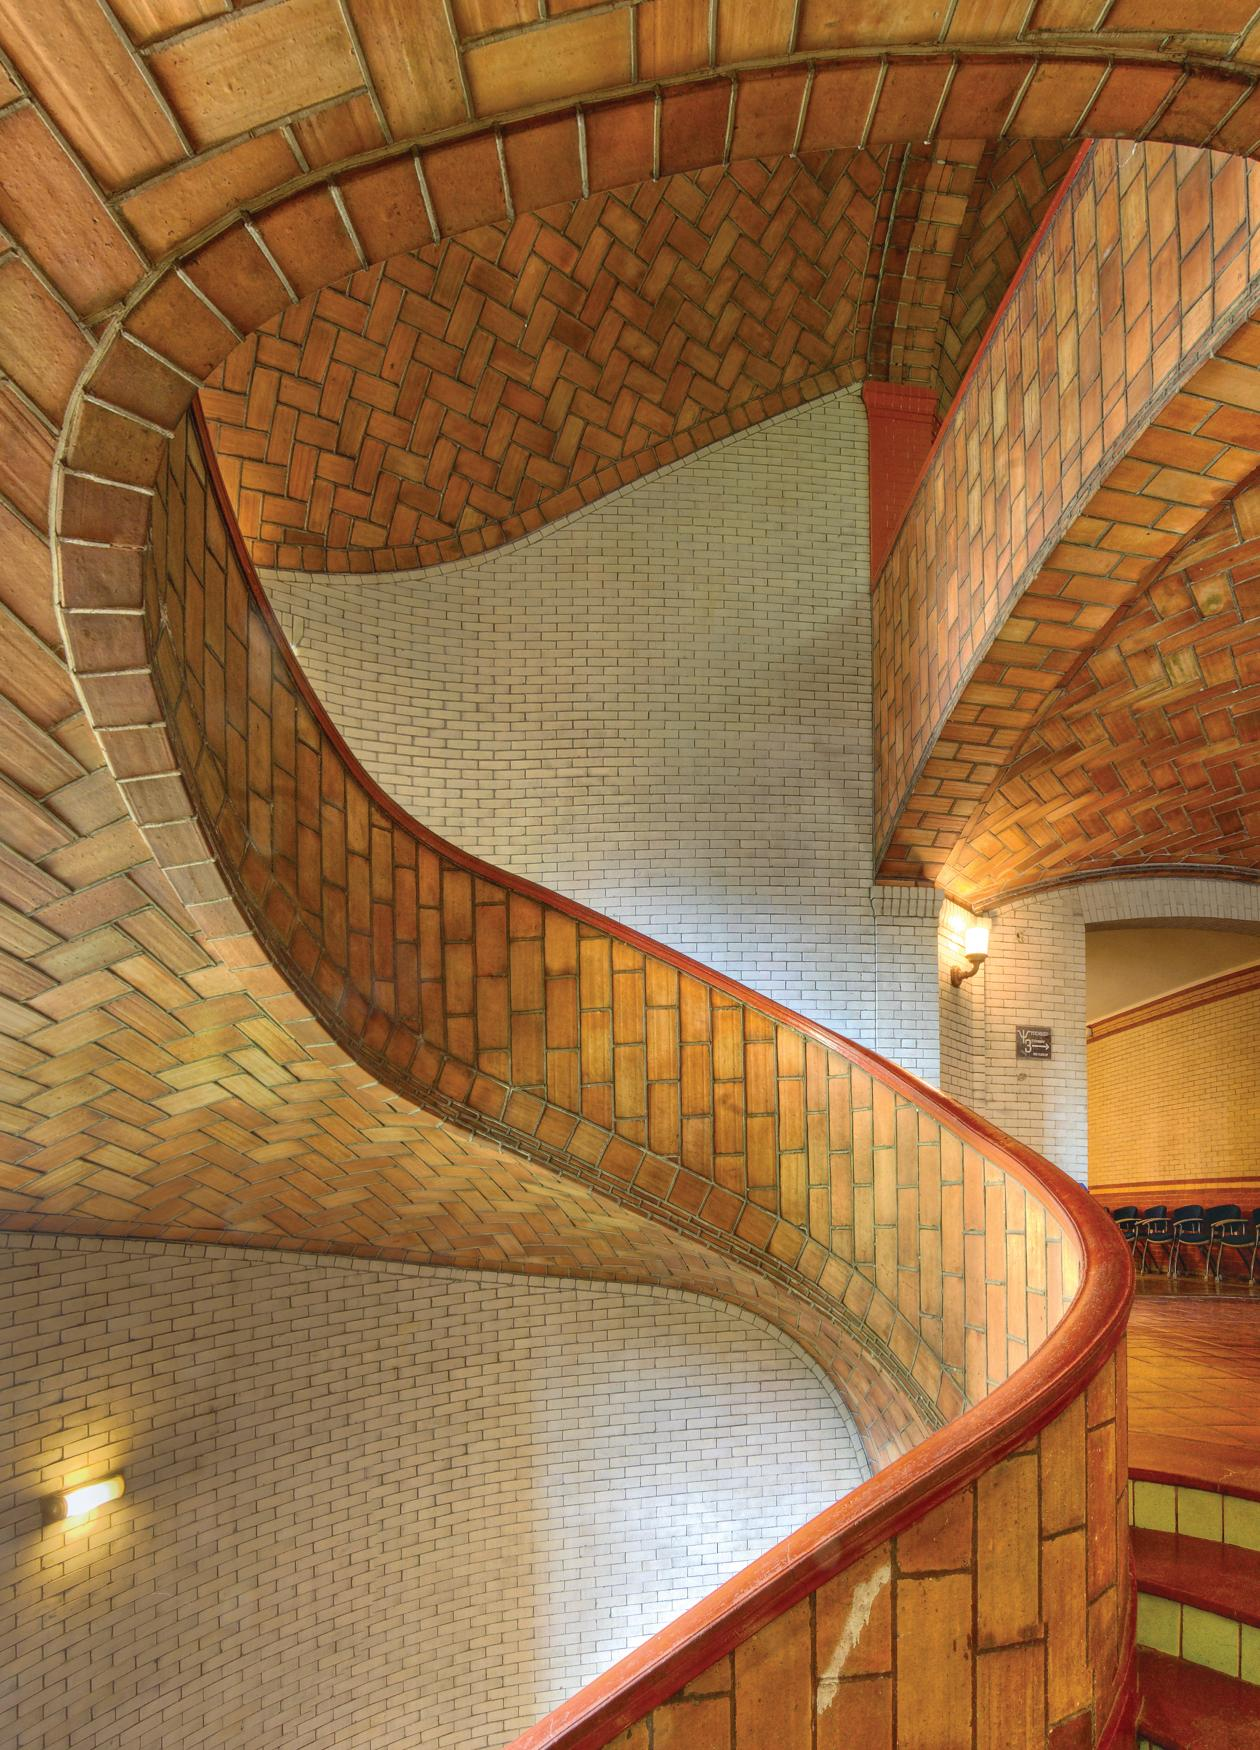 Photo of an ornate, red brick spiral staircase.